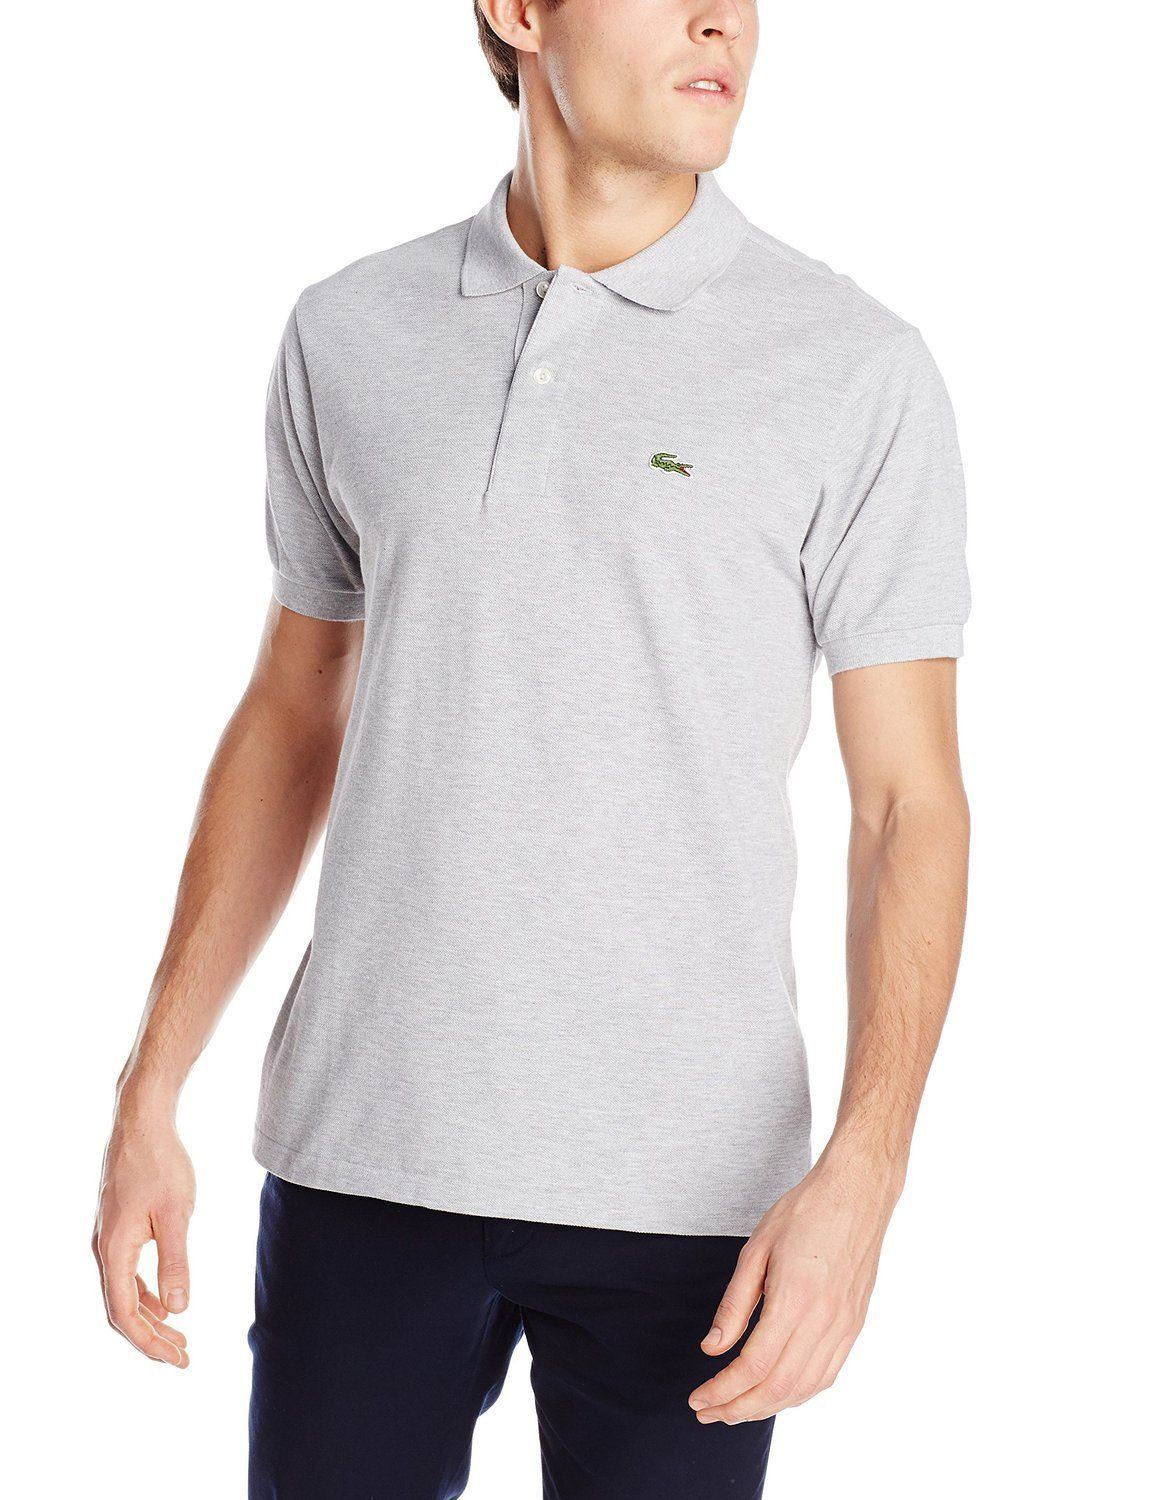 NEW LACOSTE SPORT MEN'S PREMIUM SPORT ATHLETIC COTTON POLO T-SHIRT ARGENT SIZE S